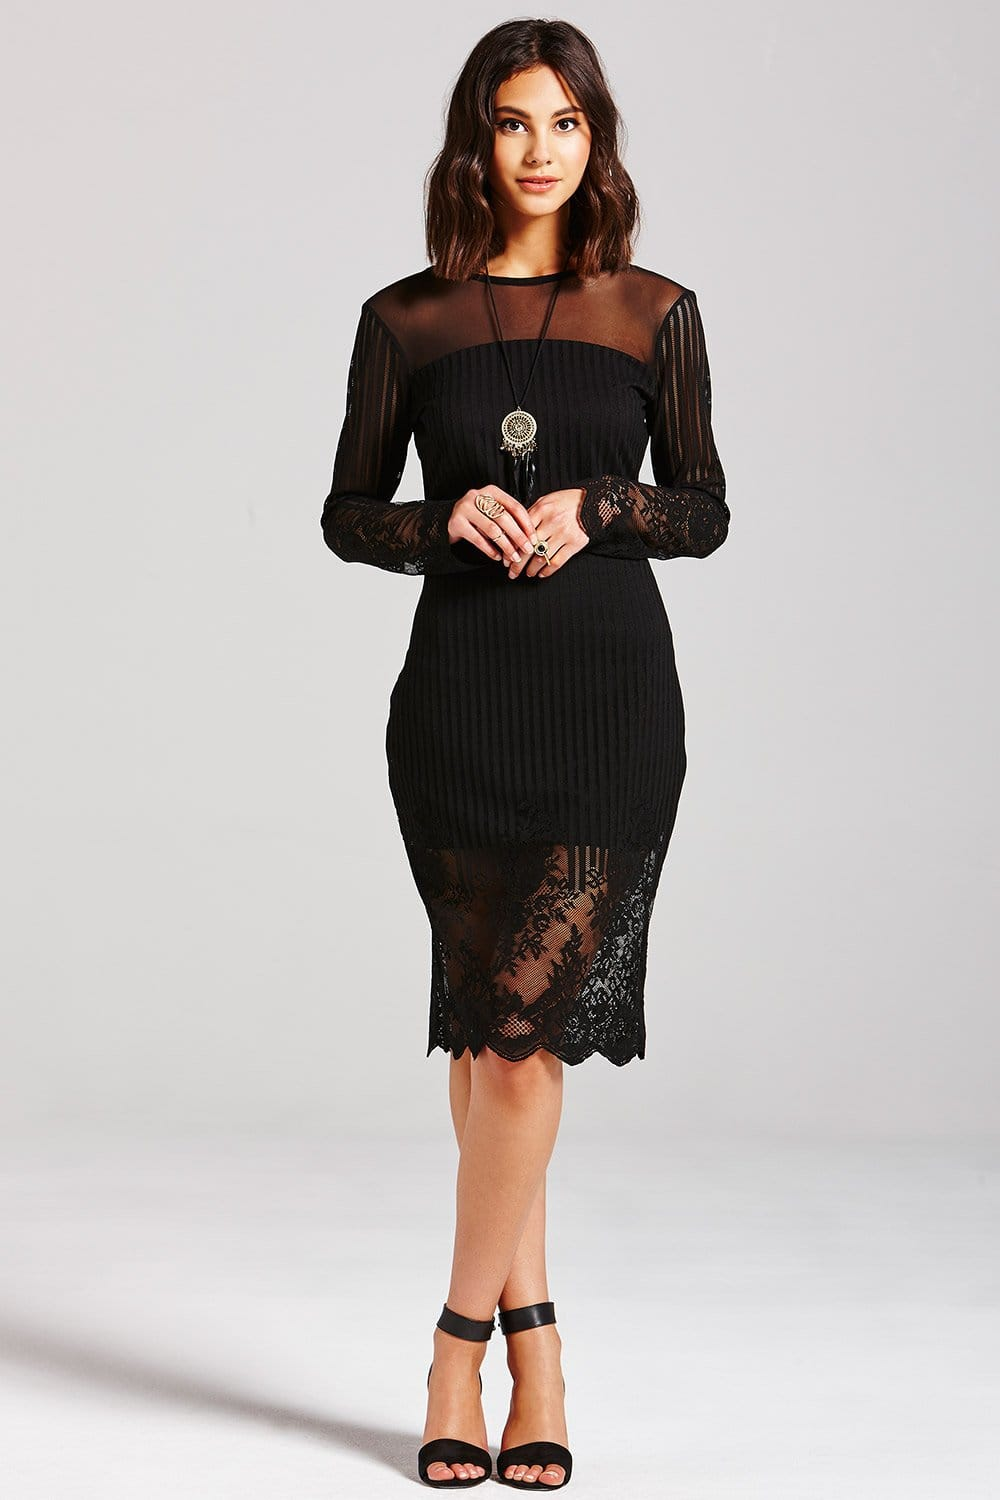 Girls On Film Black Lace 3 4 Sleeve Dress Girls On Film